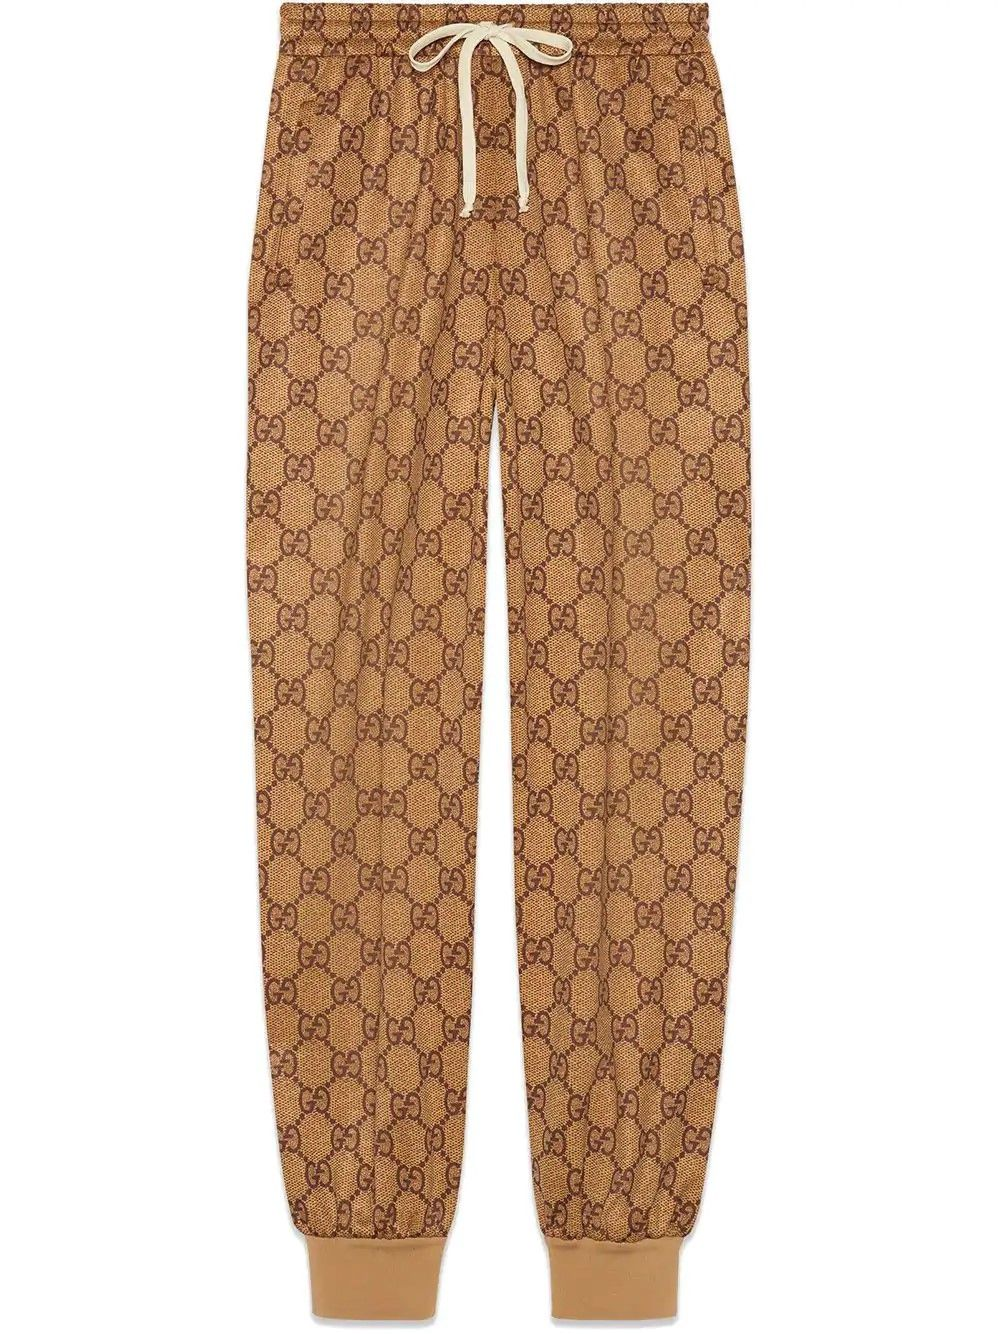 379023e0dee9 Gucci Jogging pants | My Style in 2019 | Pants, Fashion, Gucci